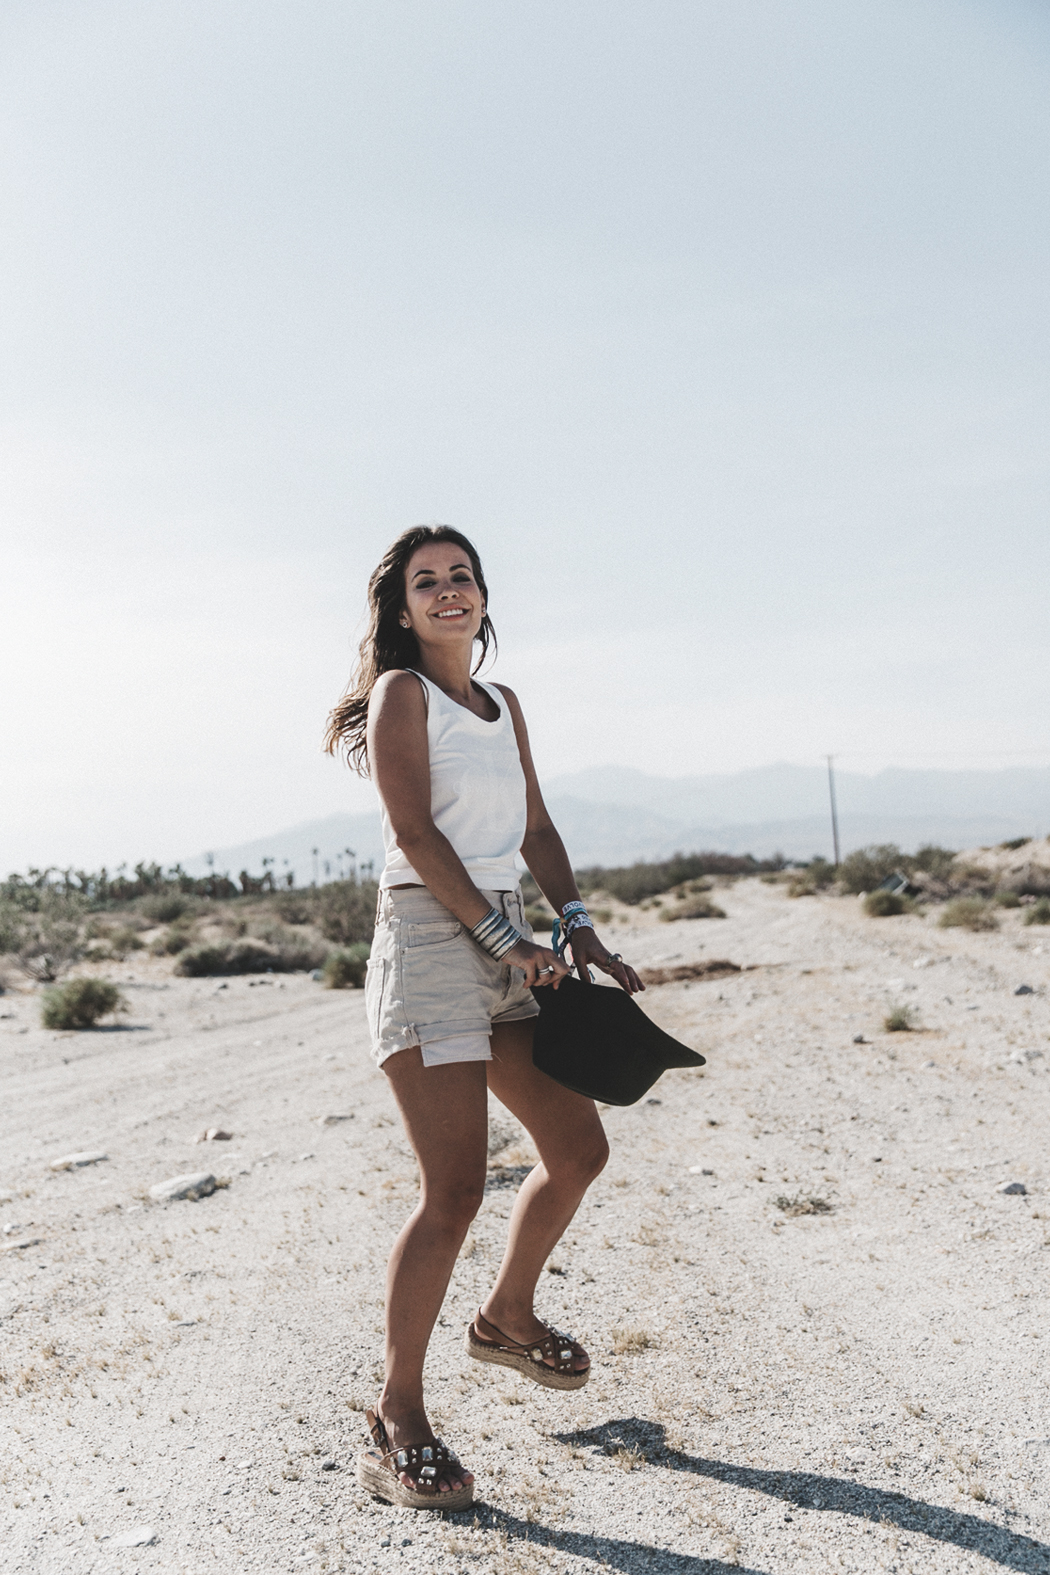 Calvin_Klein-White_Series_Collection-Shorts-Desert-Palm_Springs-Outfit-26